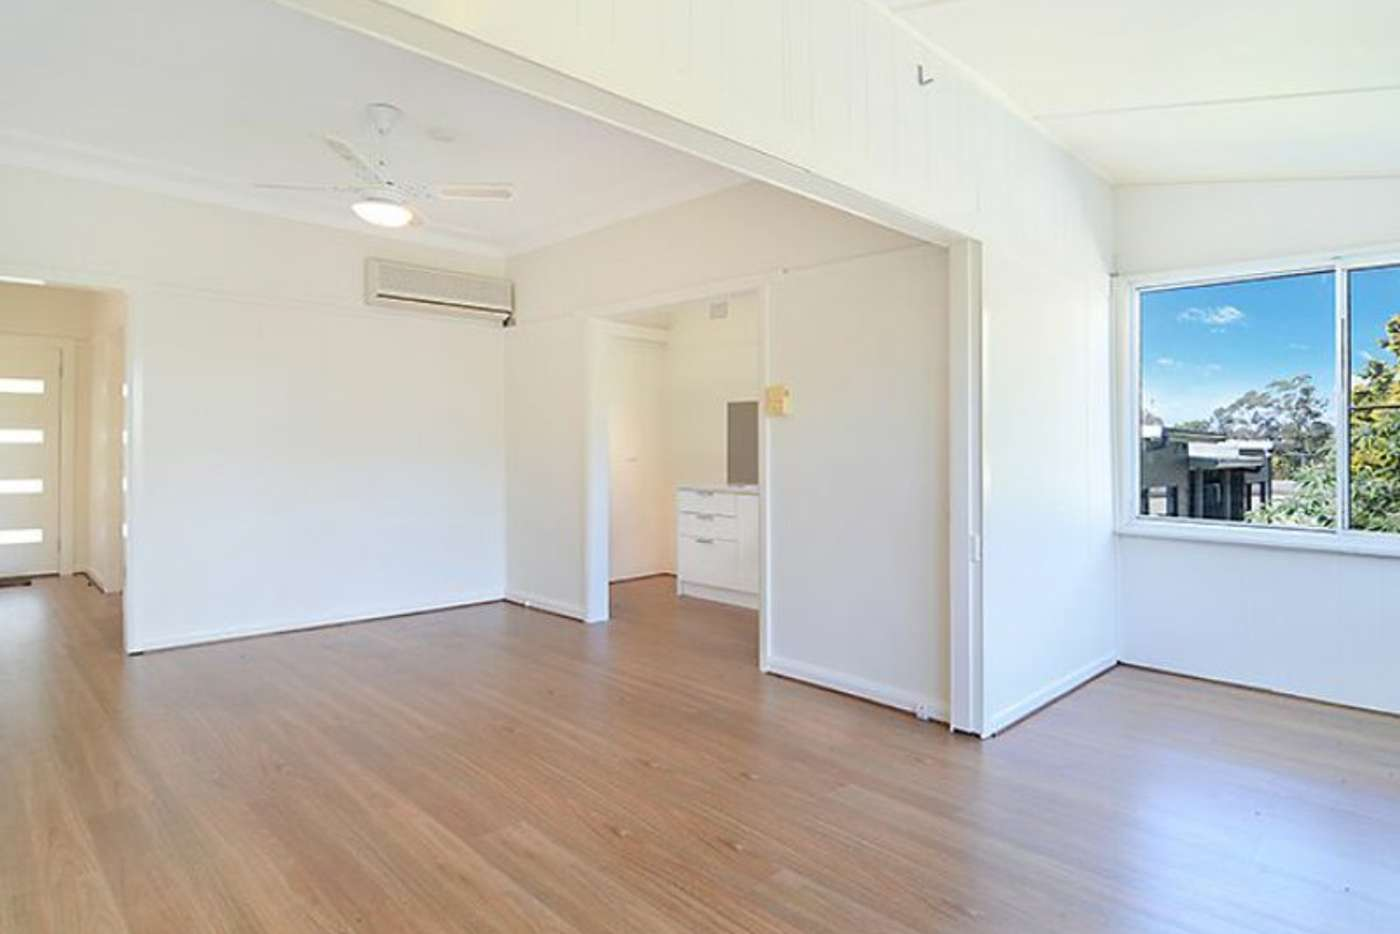 Sixth view of Homely house listing, 22 Wall Avenue, Asquith NSW 2077